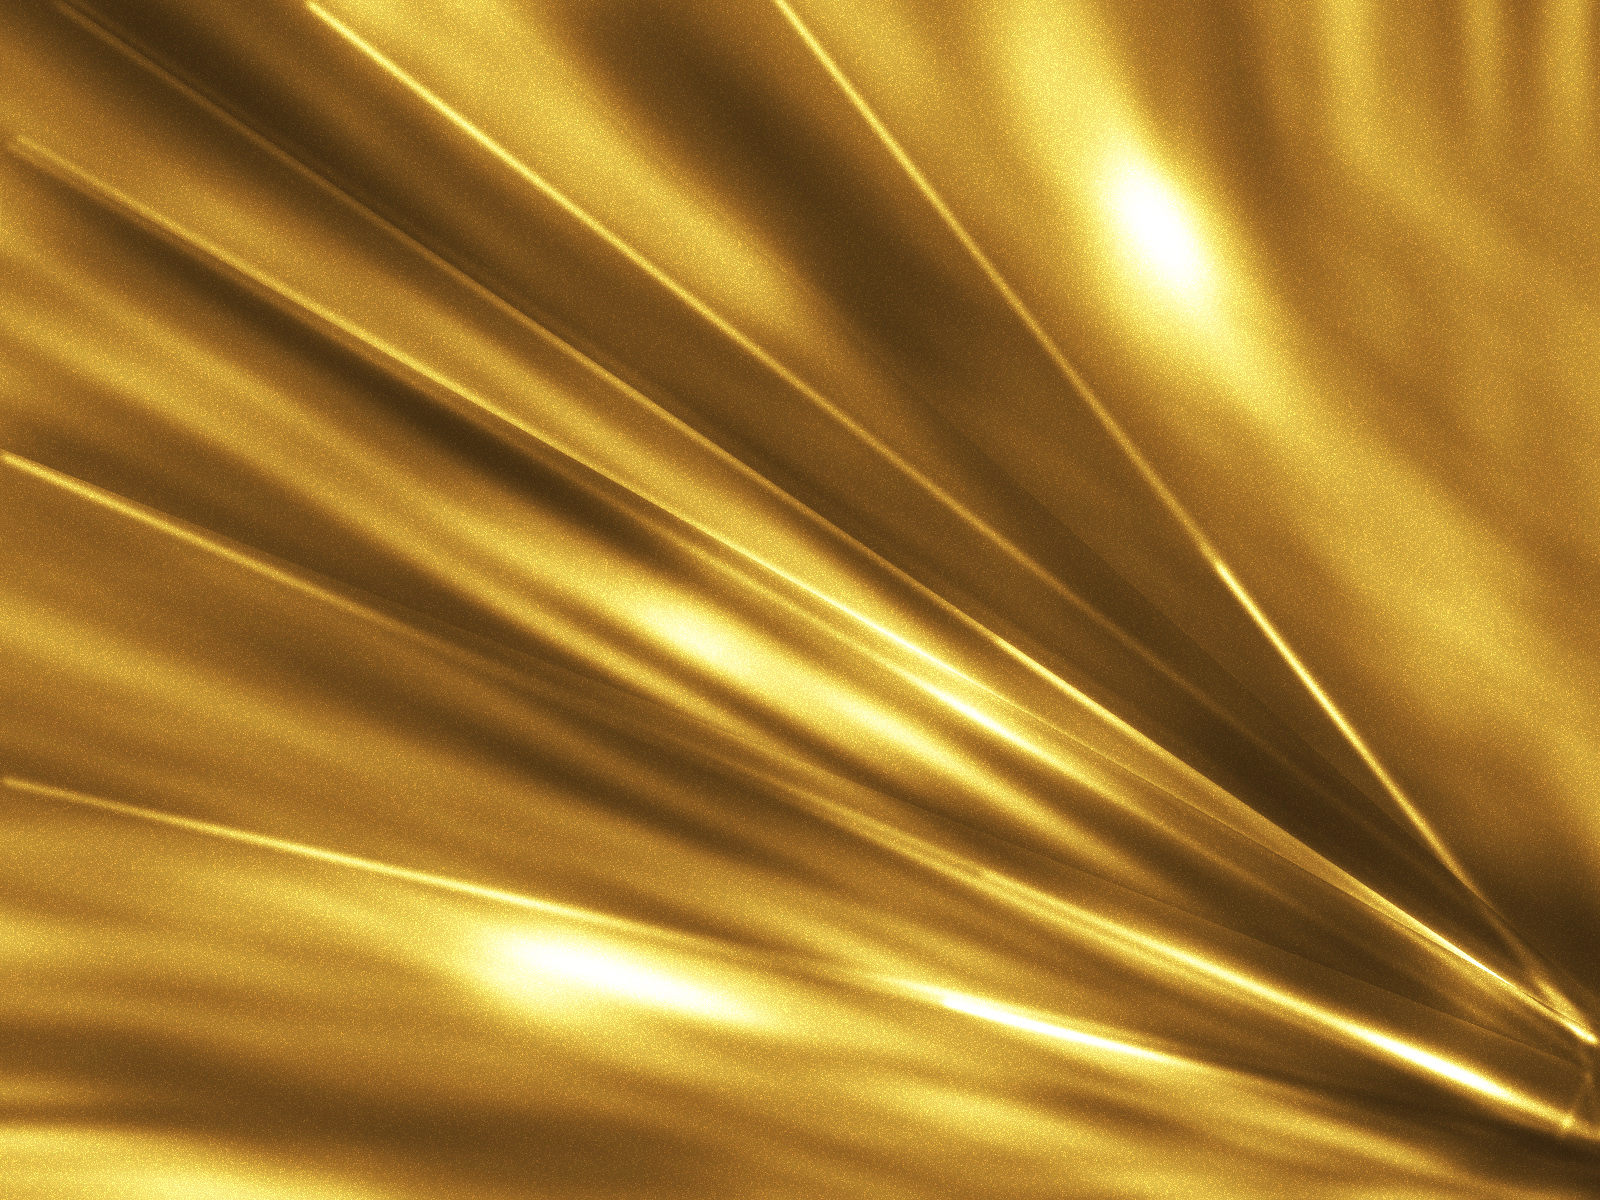 Background wallpaper gold satin 1600x1200